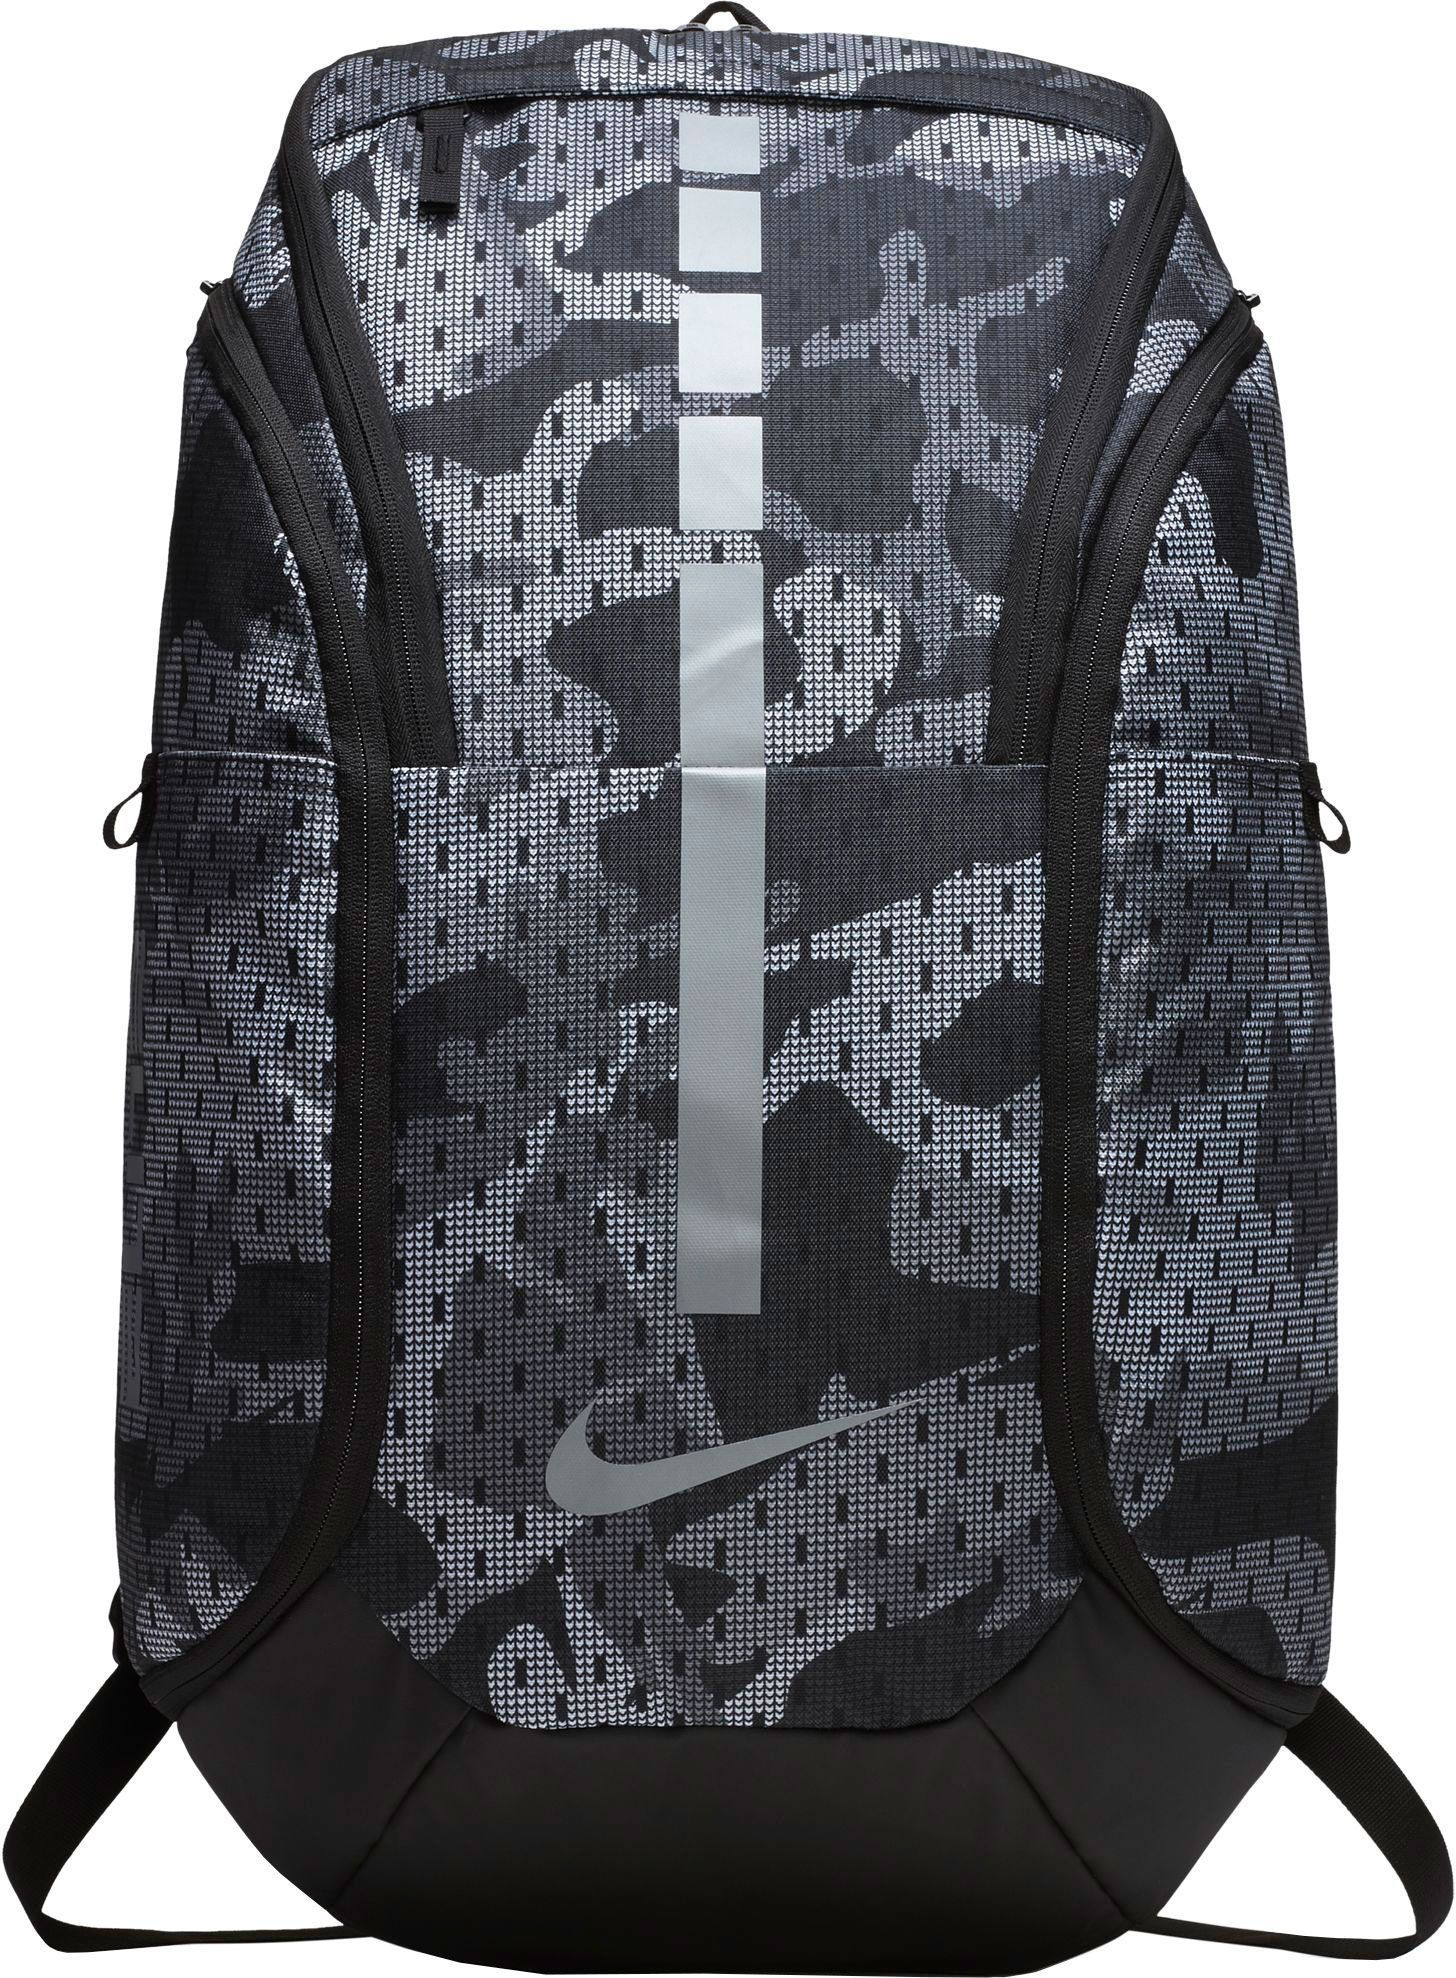 fad6bfd9e2da Nike Hoops Elite Pro Camo Basketball Backpack